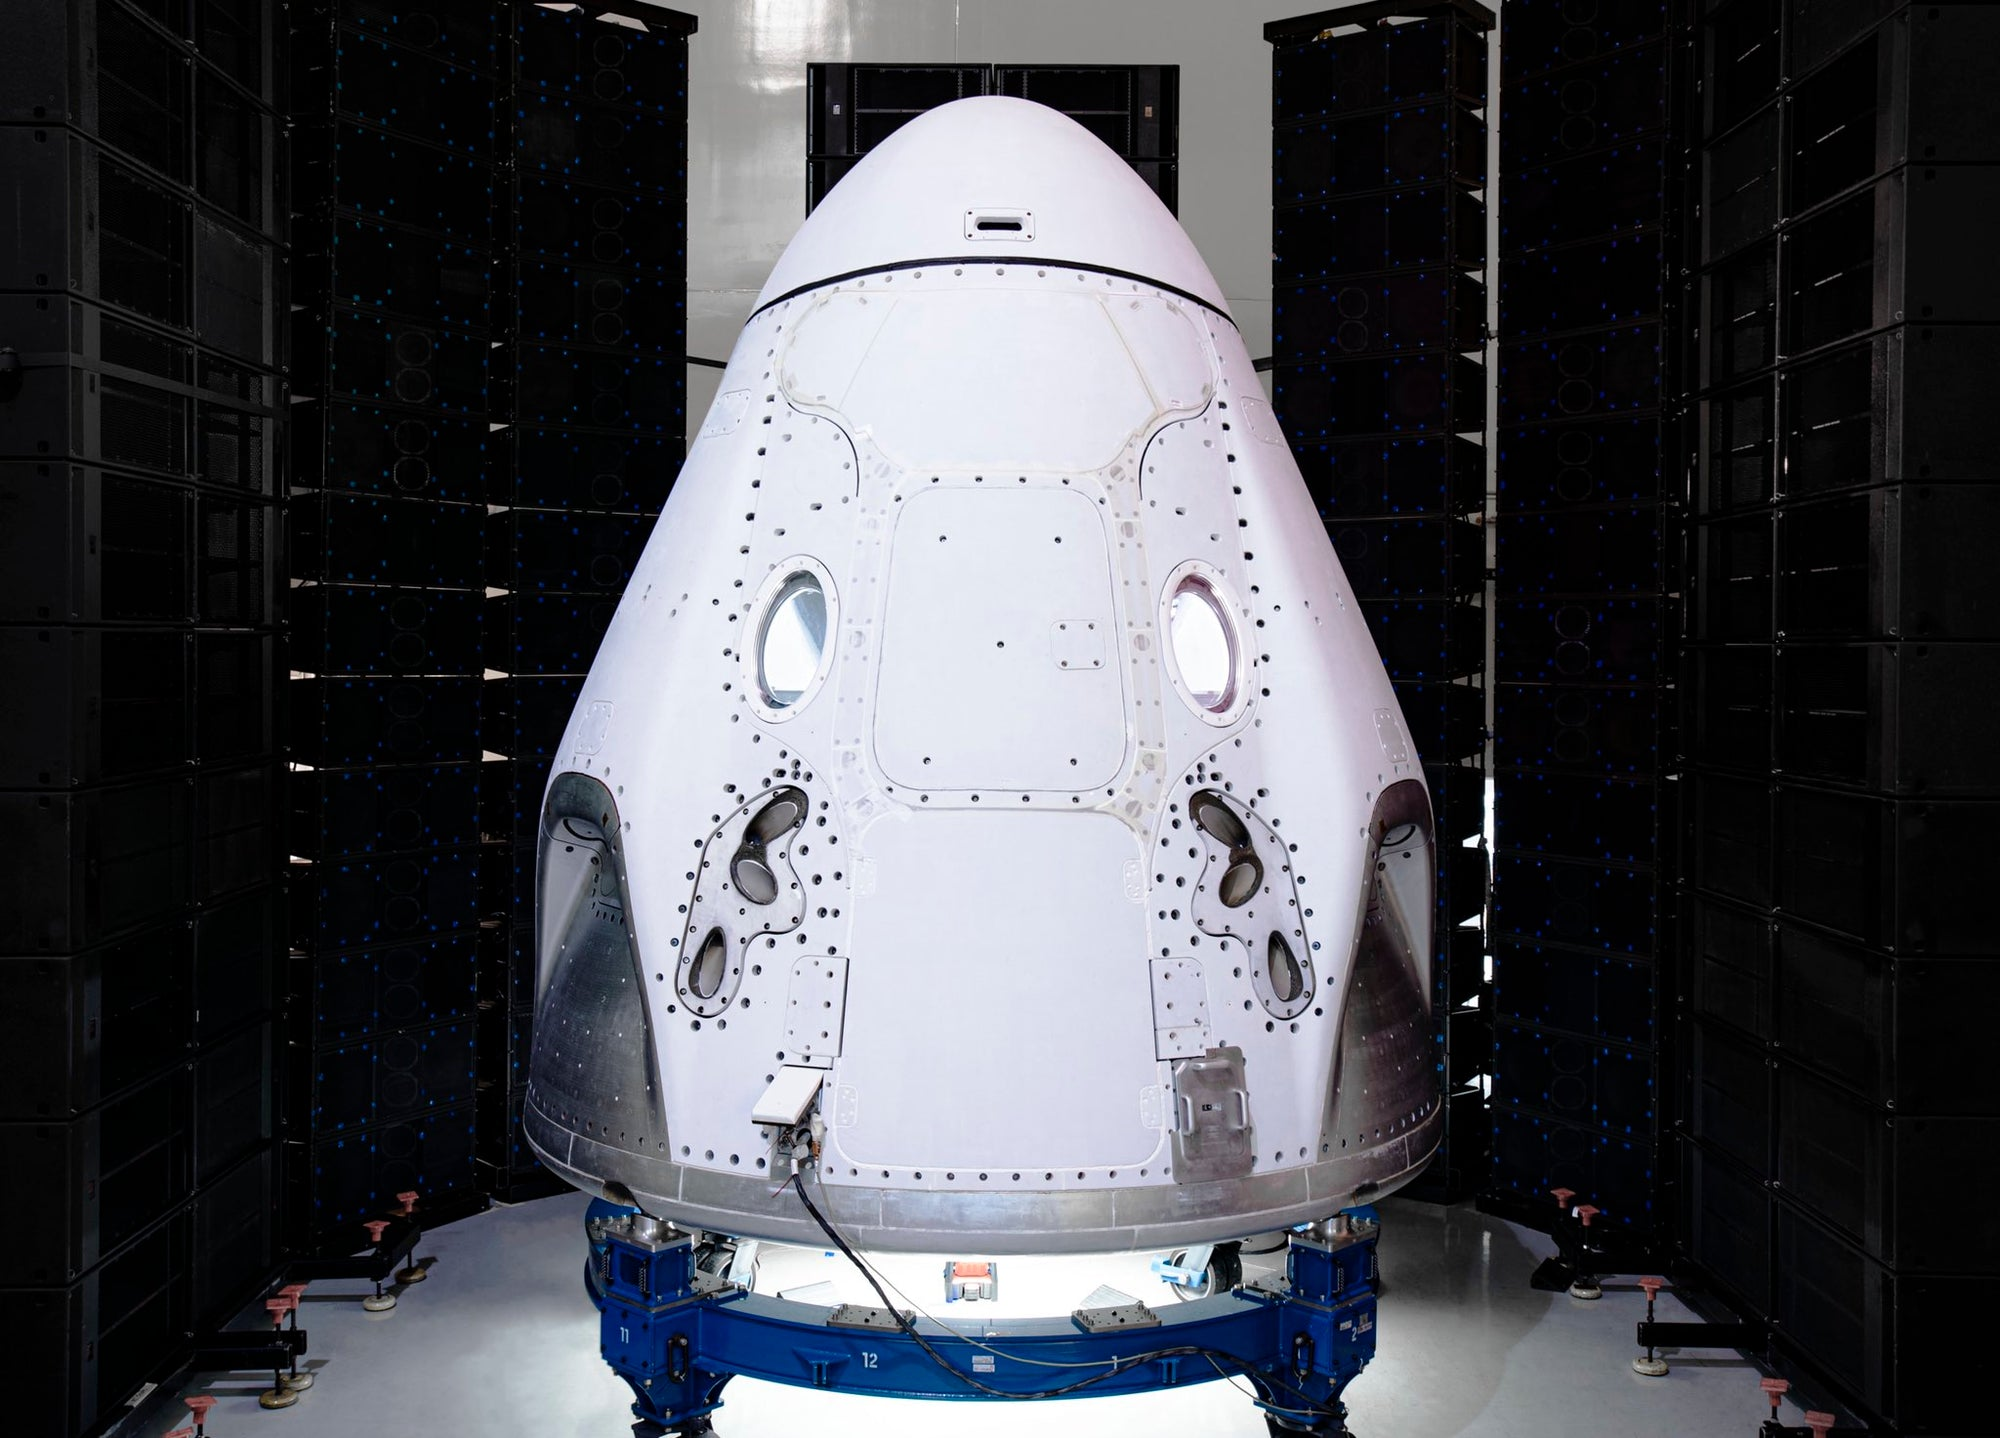 SpaceX's Crew Dragon spacecraft completes acoustic testing -another step closer towards launching NASA Astronauts for the first time!